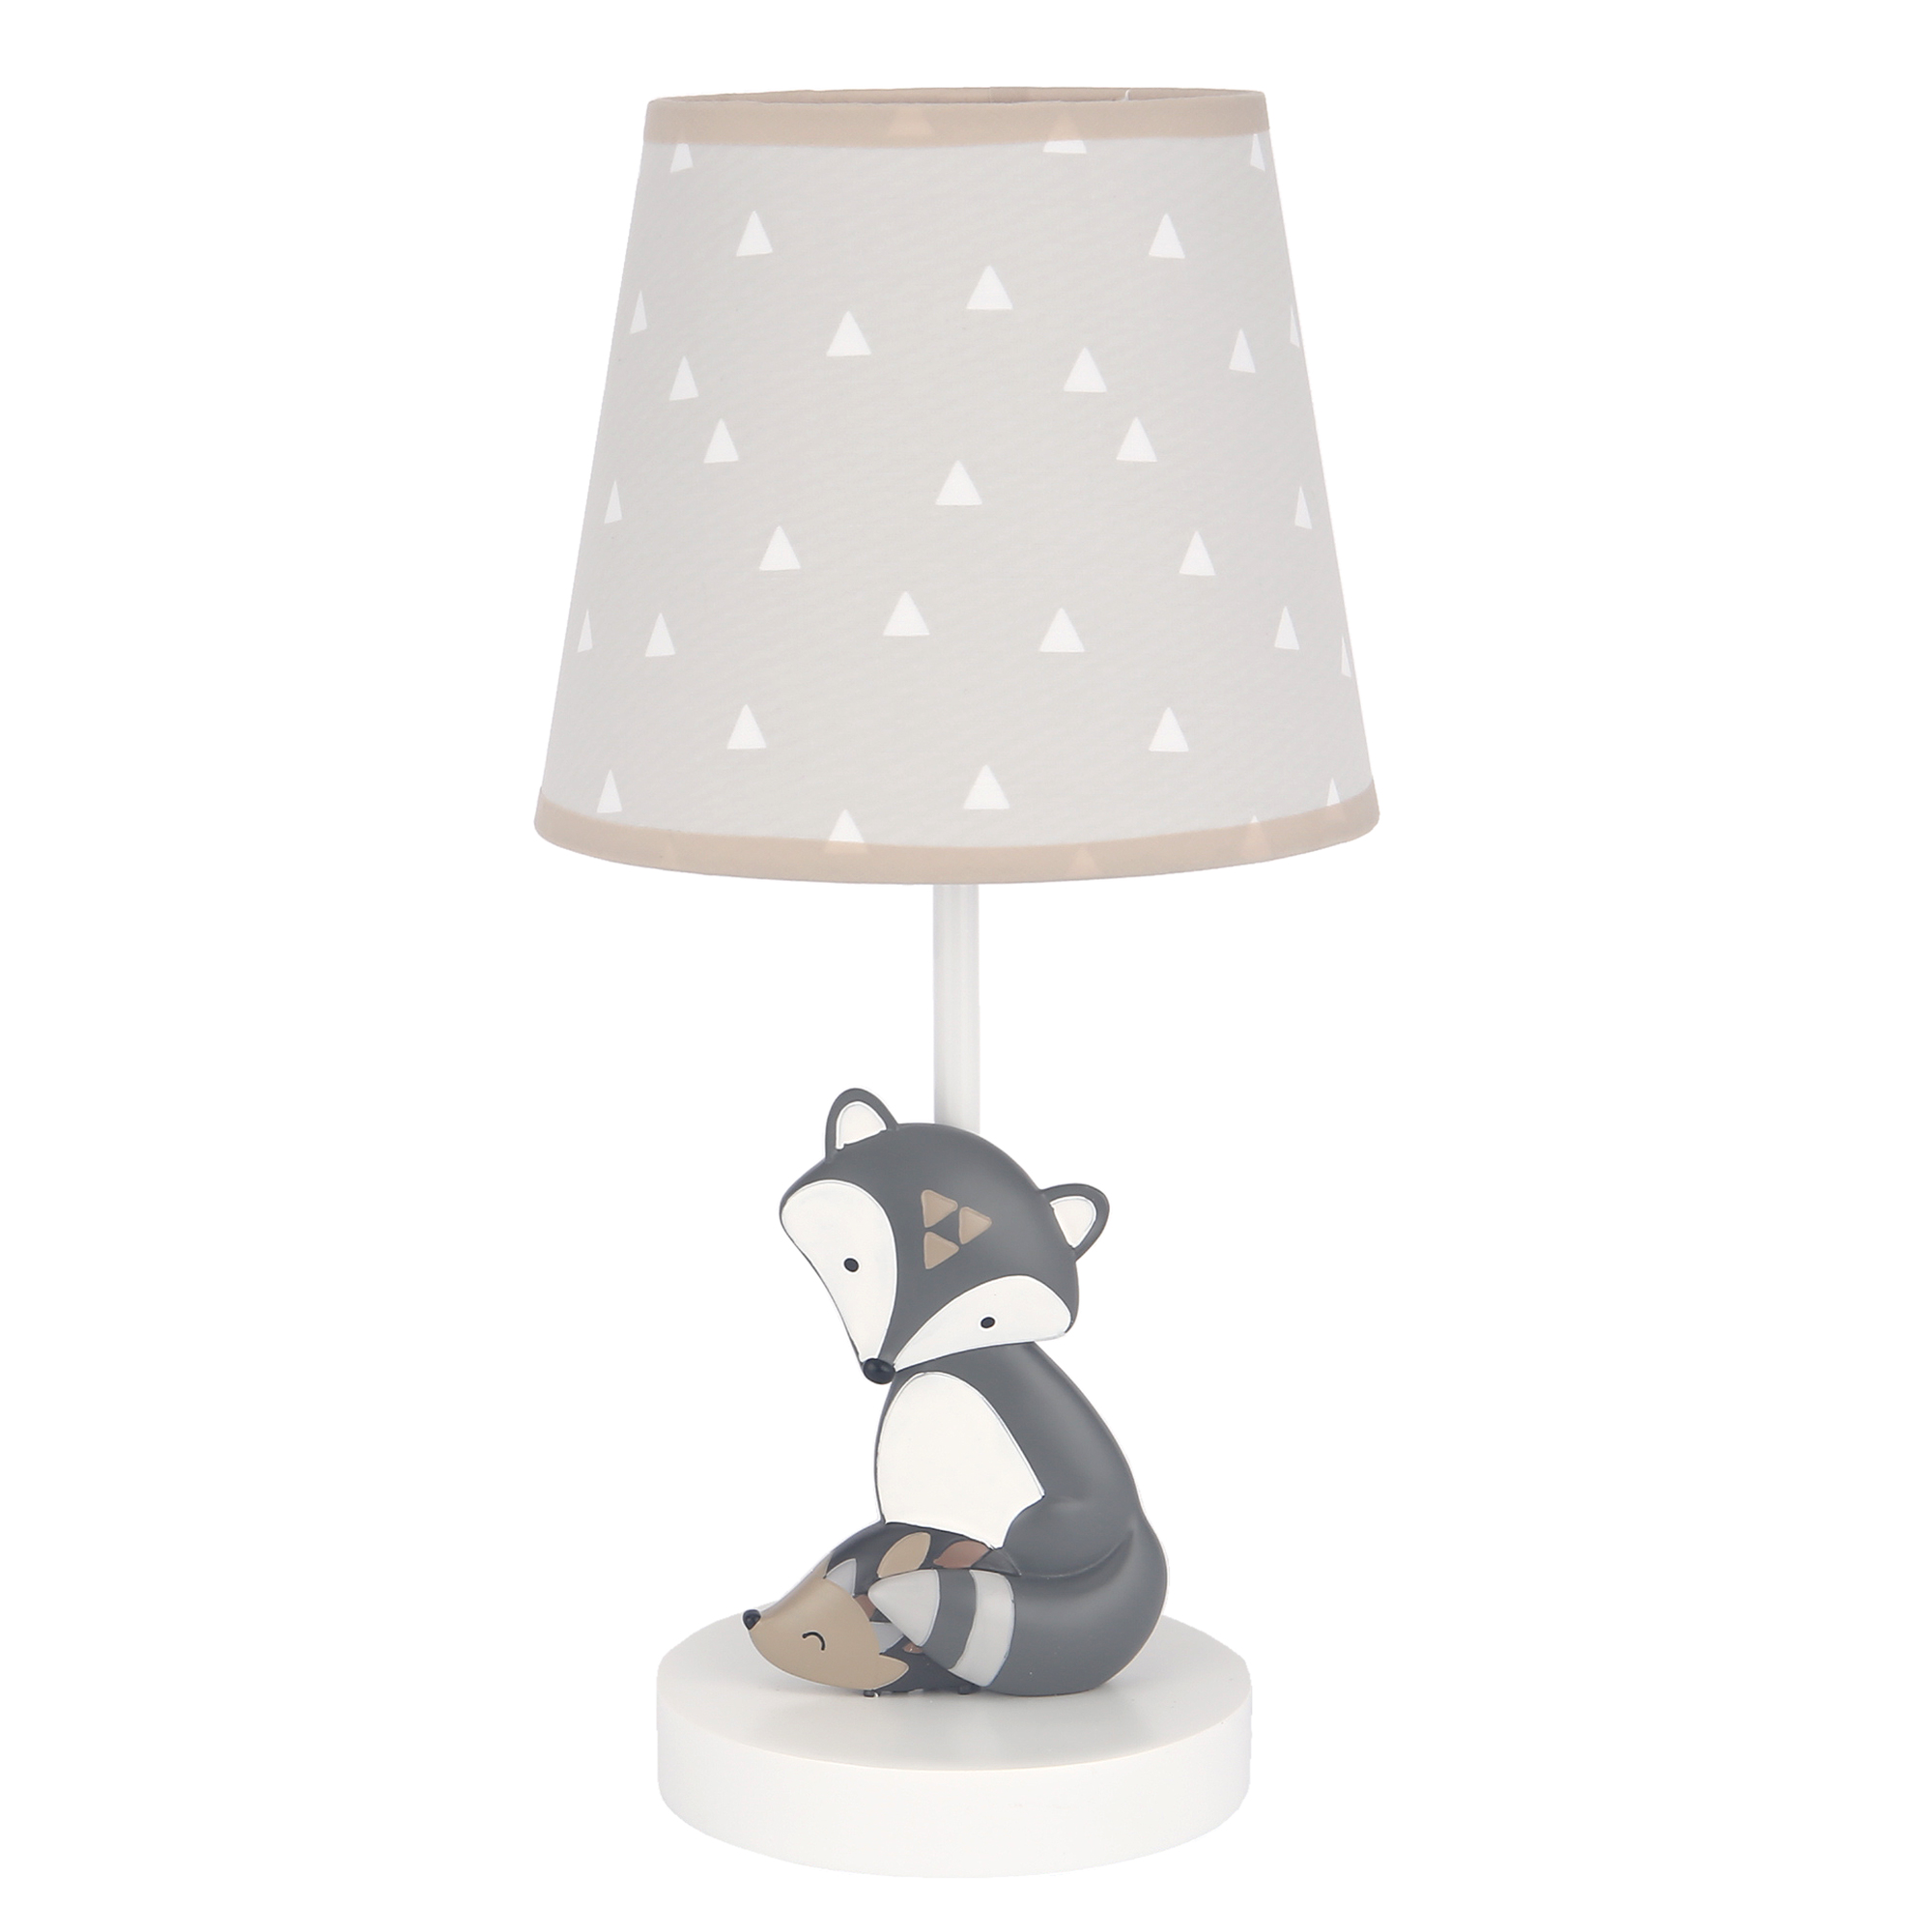 Bedtime Originals Roar Lamp with Shade /& Bulb Blue